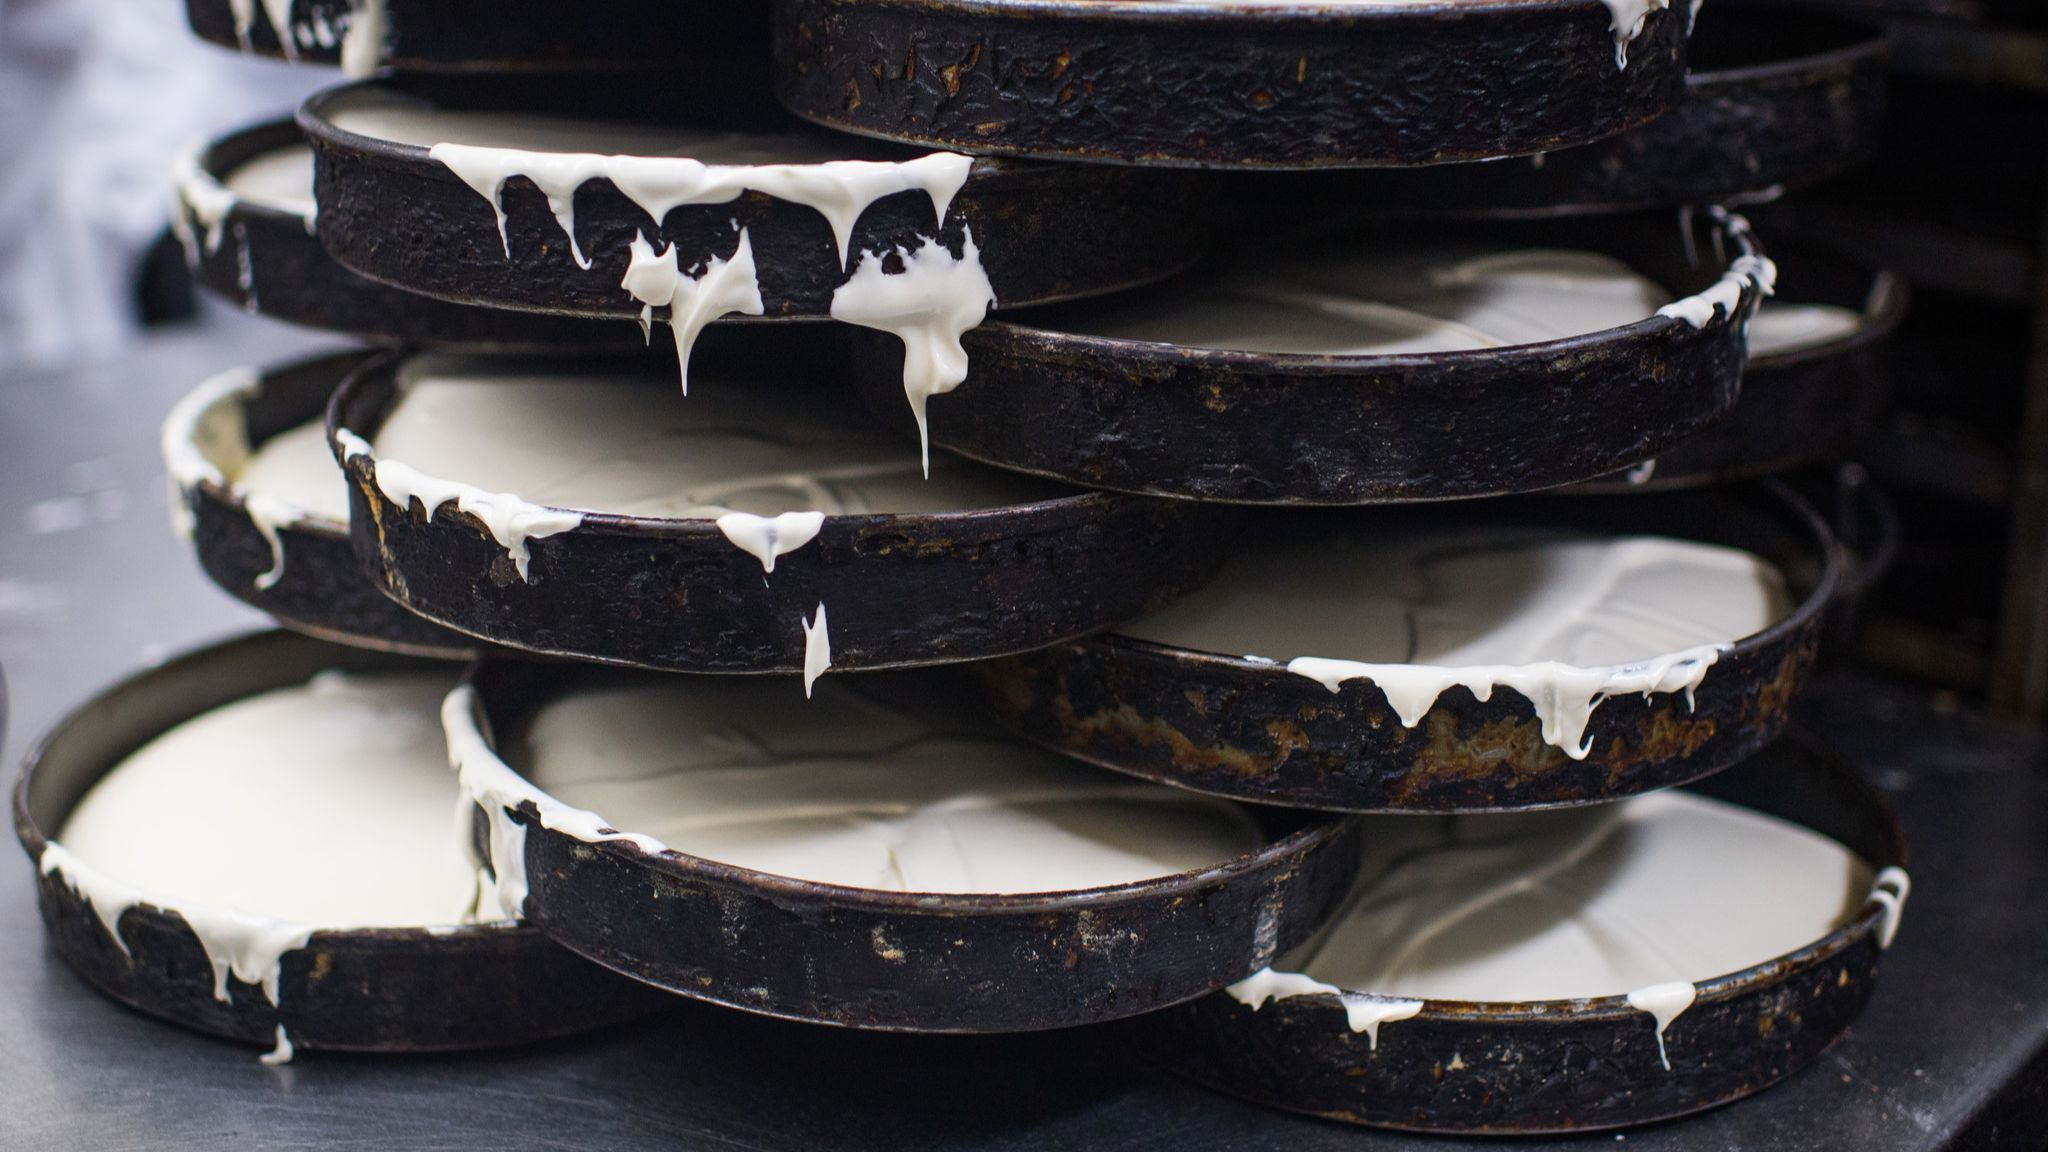 LOS ANGELES, CA - June 13, 2018 Cake batter waits in molds to be cooked in the industrial oven at P